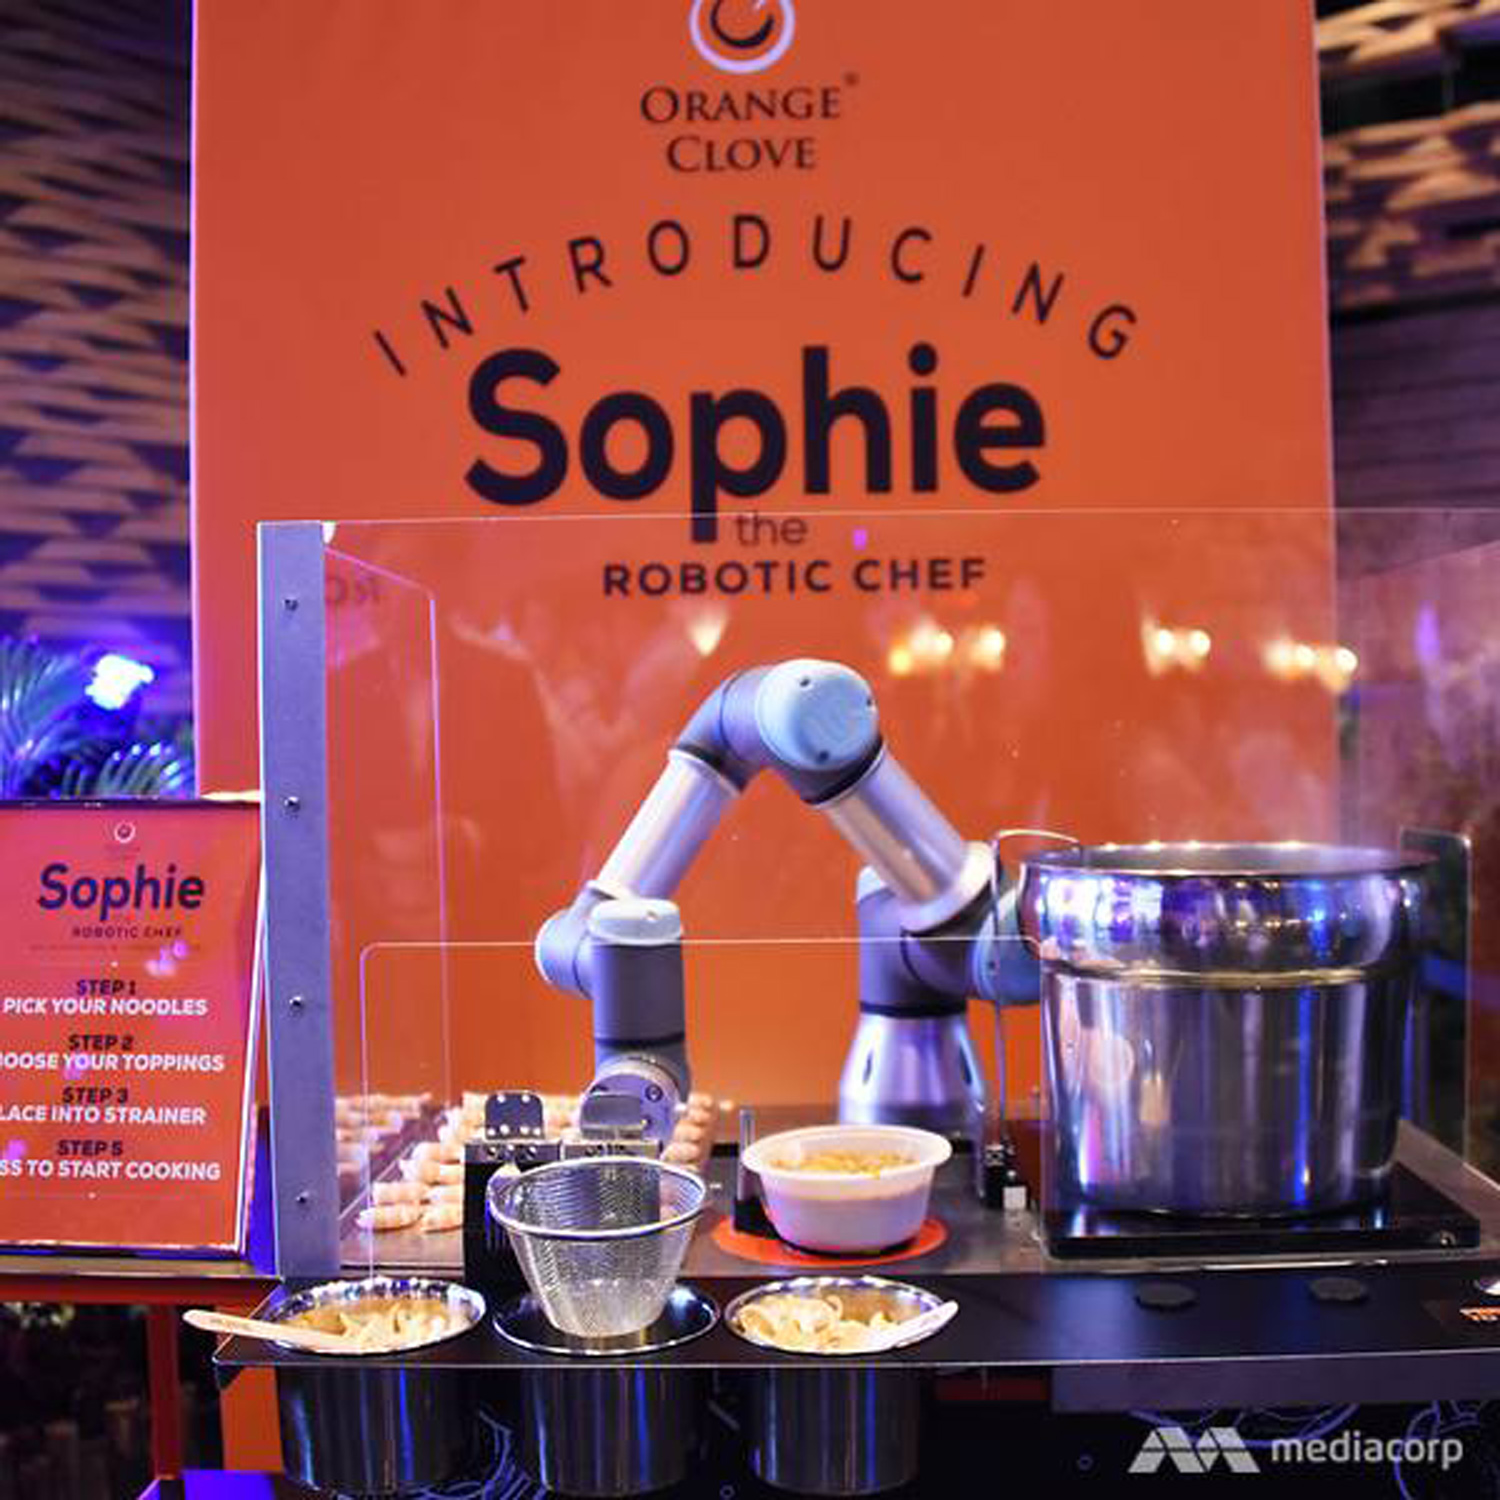 Robot laksa station featuring the robotic chef Sophie via cnalifestyle.channelnewsasia.com